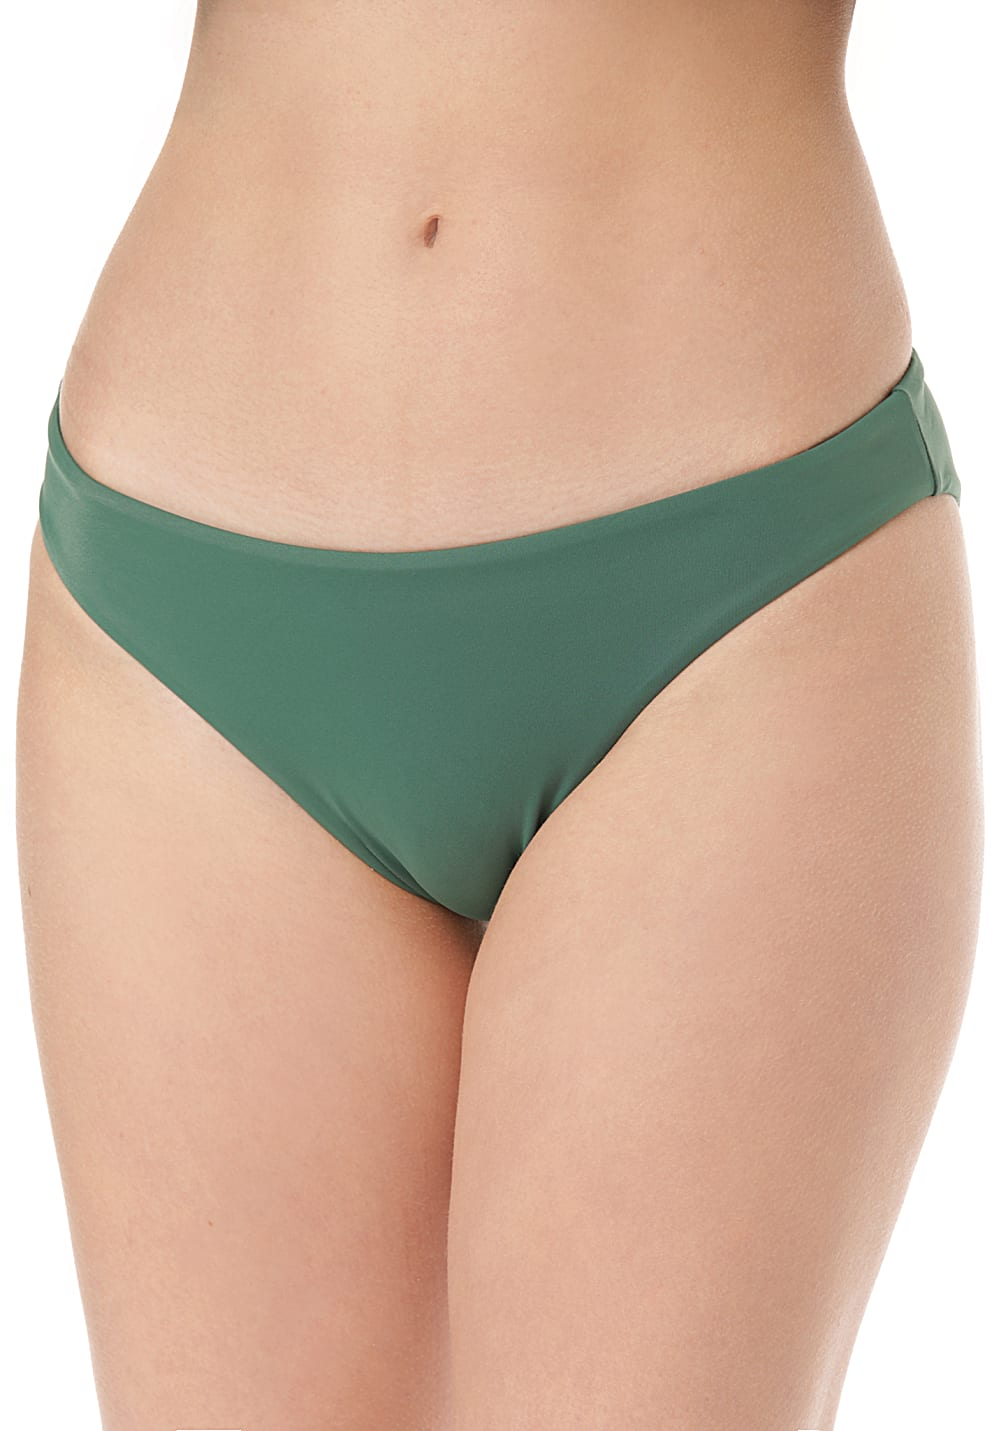 Bademode - RVCA Solid Full Bikini Hose für Damen Grün  - Onlineshop Planet Sports